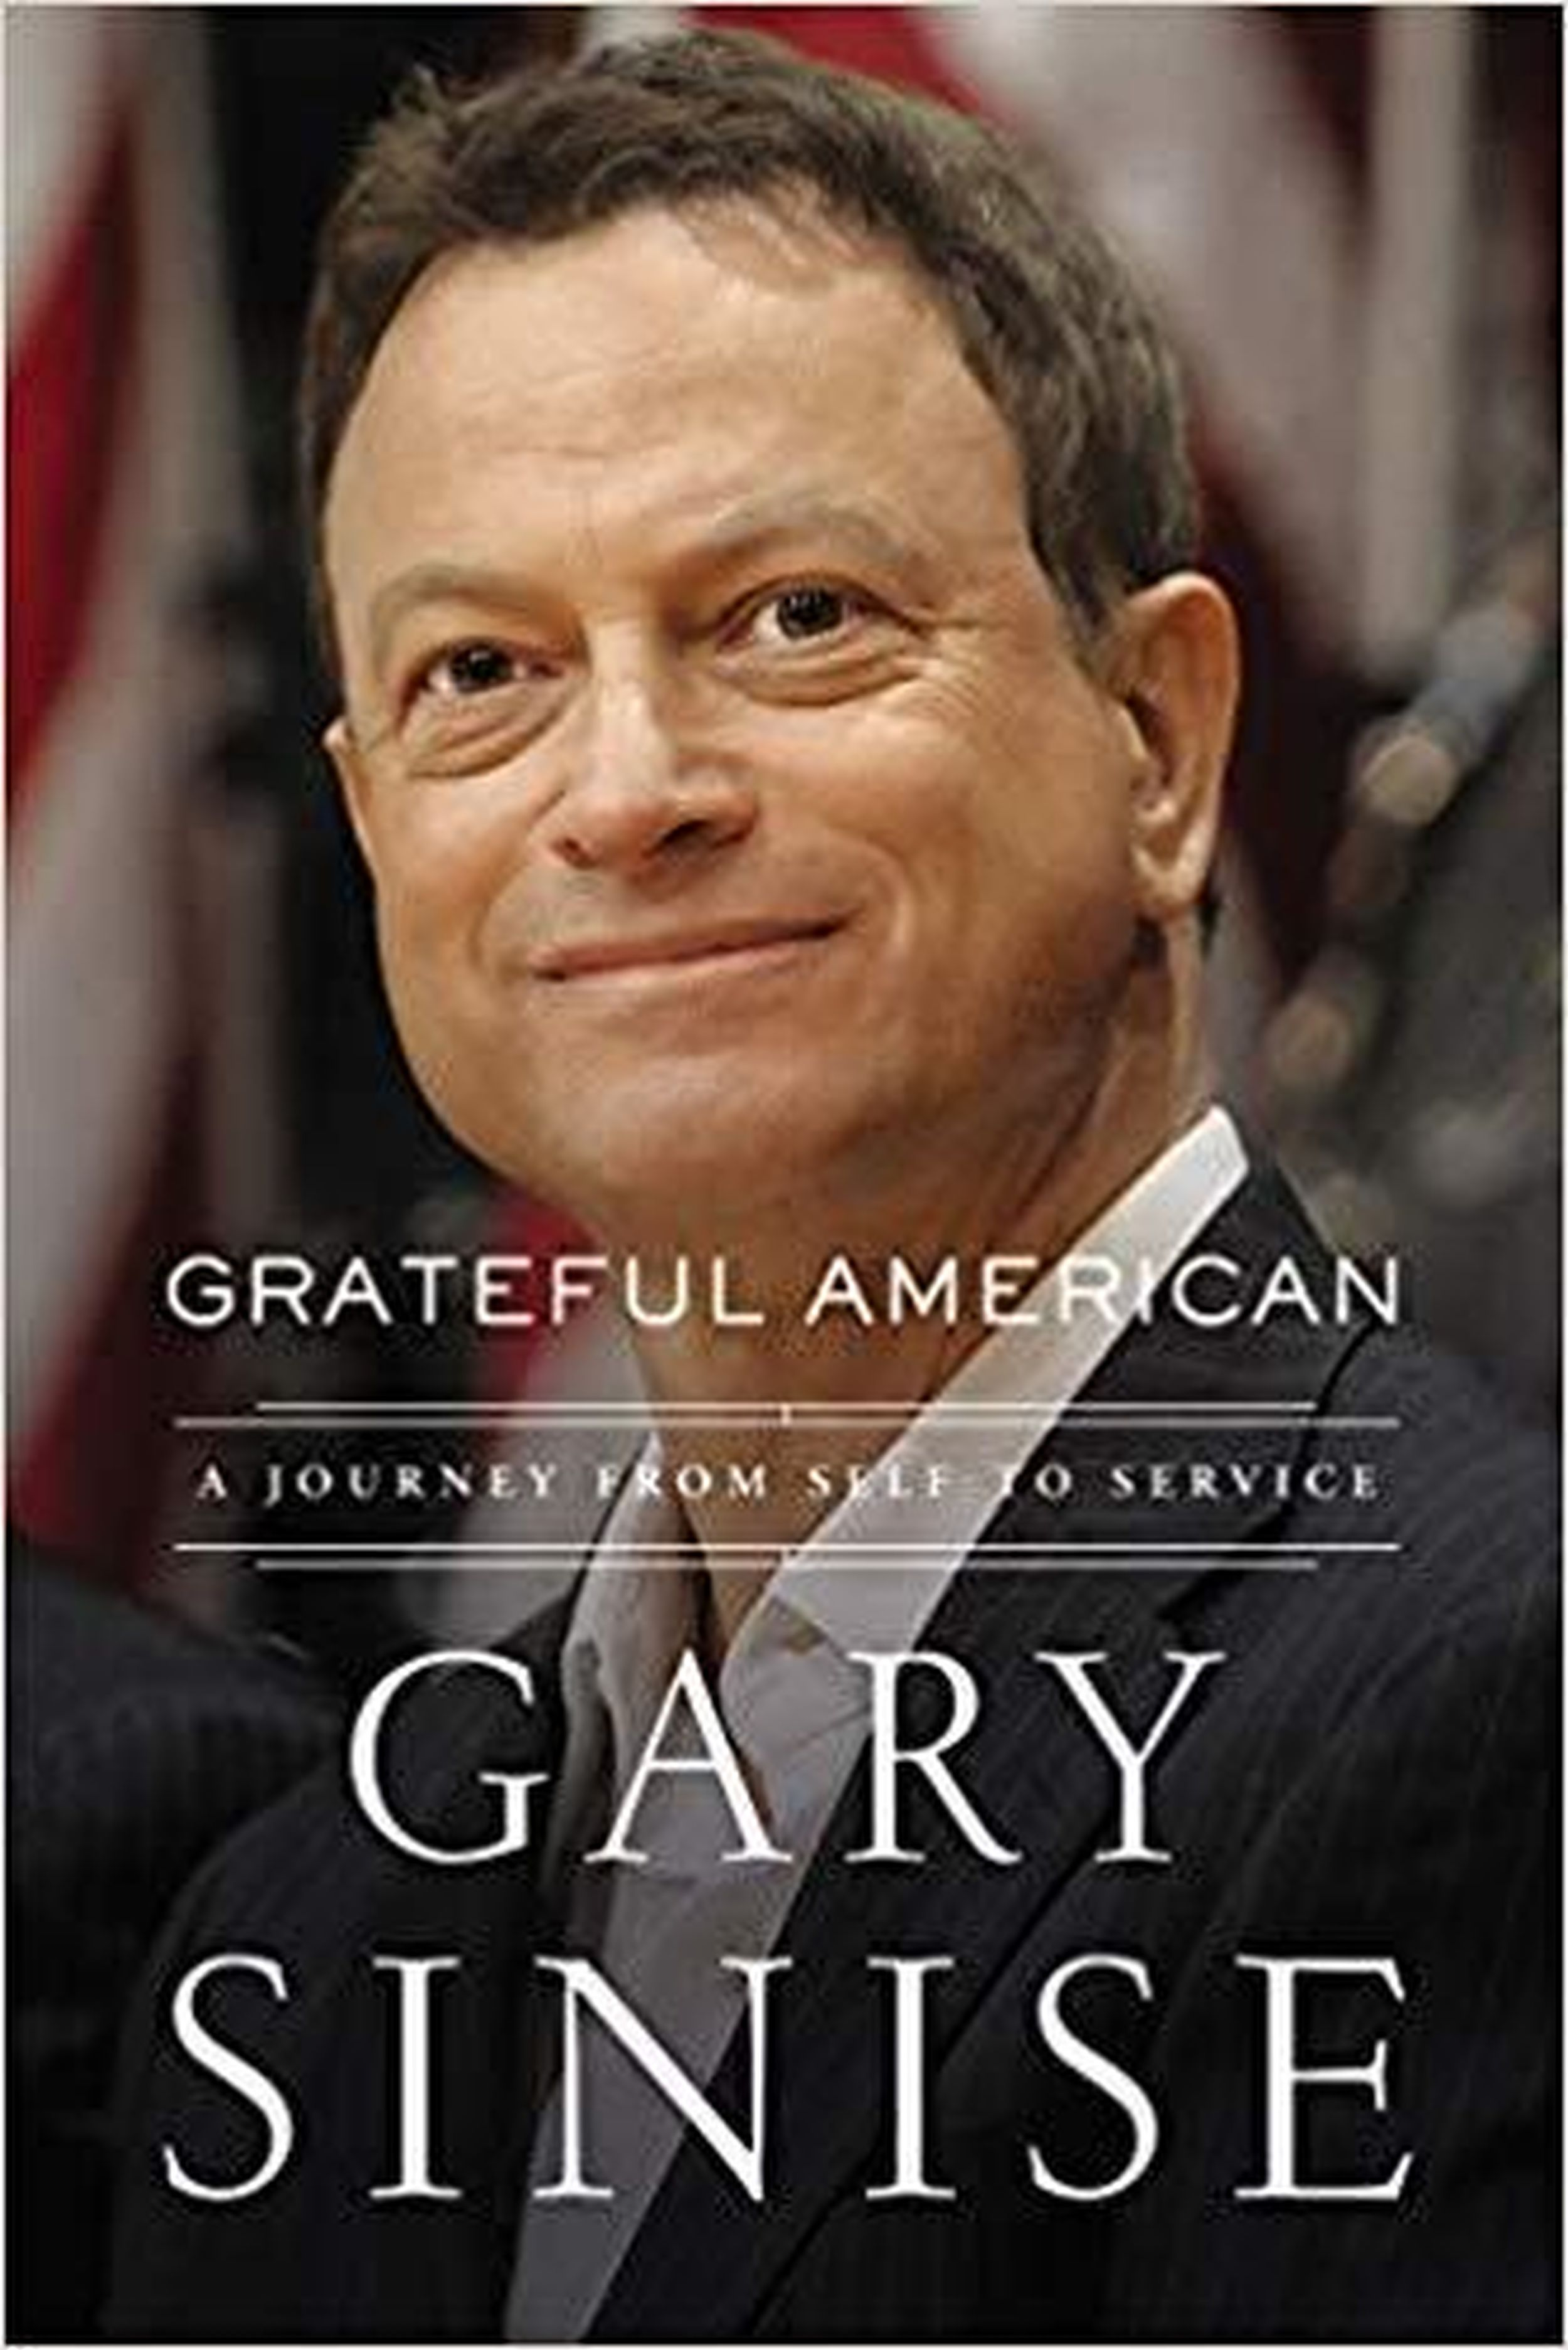 Books Gary Sinise S Memoir Isn T Your Typical Celebrity Dispatch Then Again He S Not Your Typical Actor The Spokesman Review